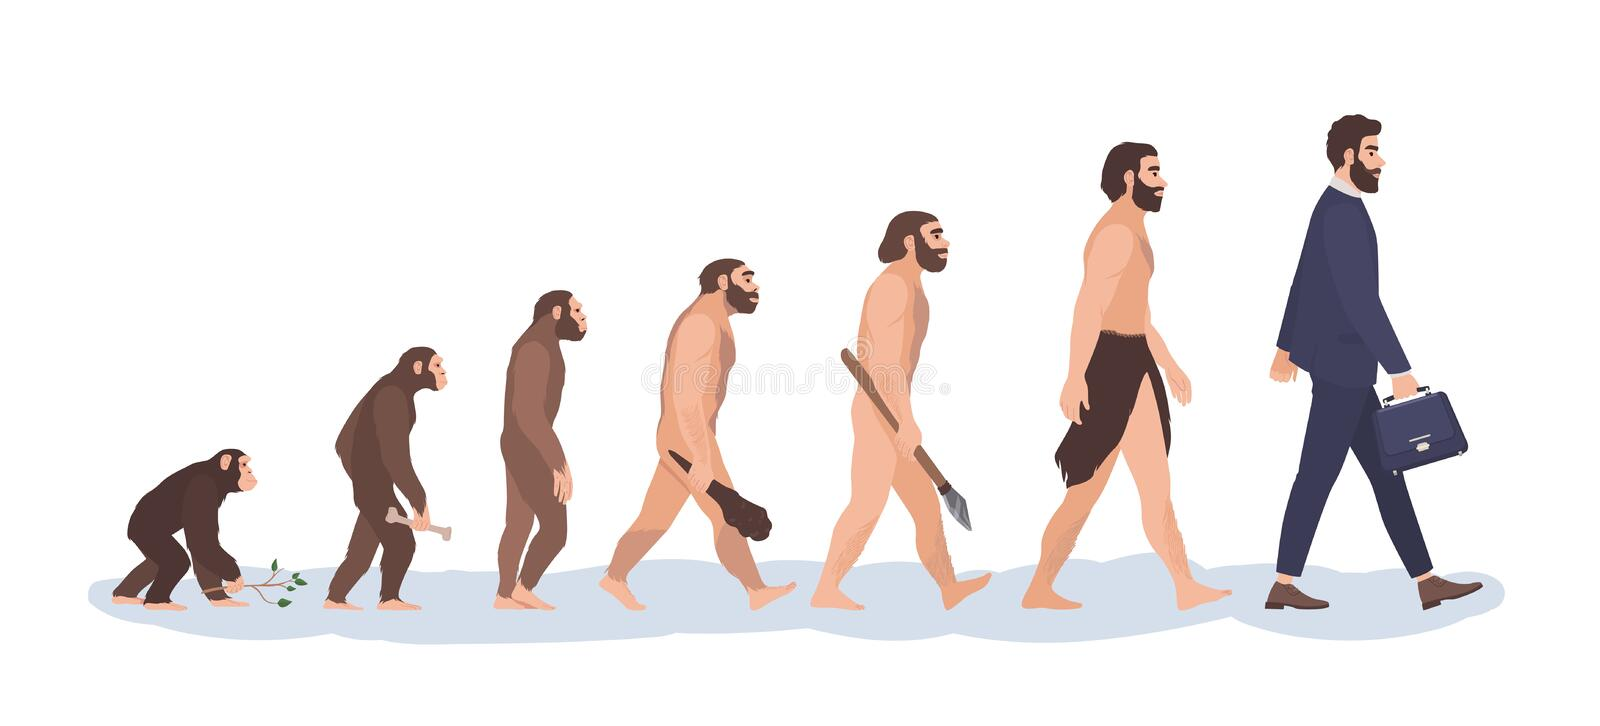 Human evolution stages. Evolutionary process and gradual development visualization from monkey or primate to businessman vector illustration